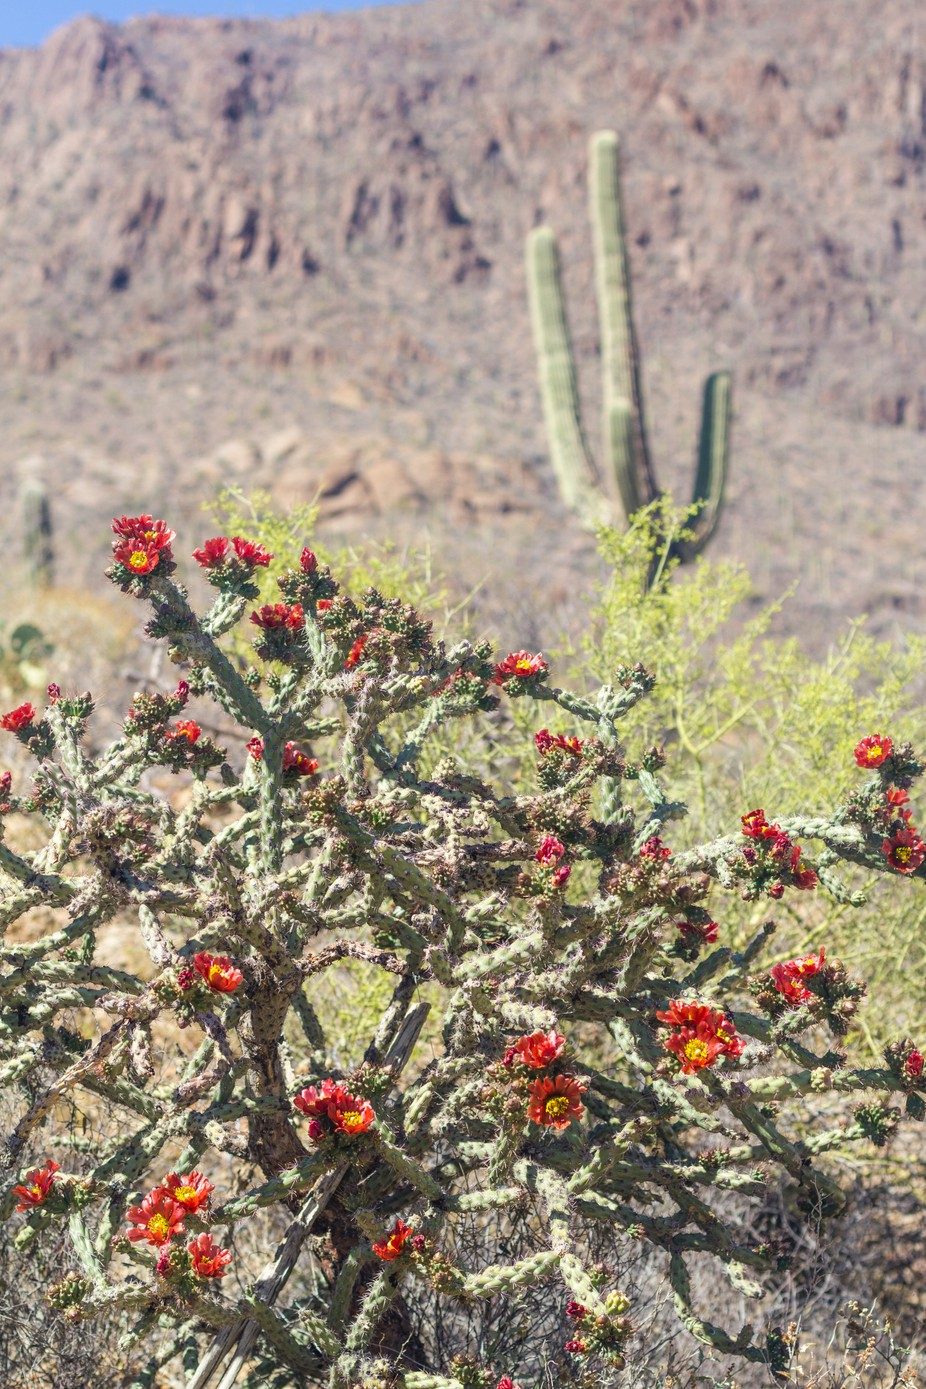 a cholla and saguaro cactus at the foothills in the desert